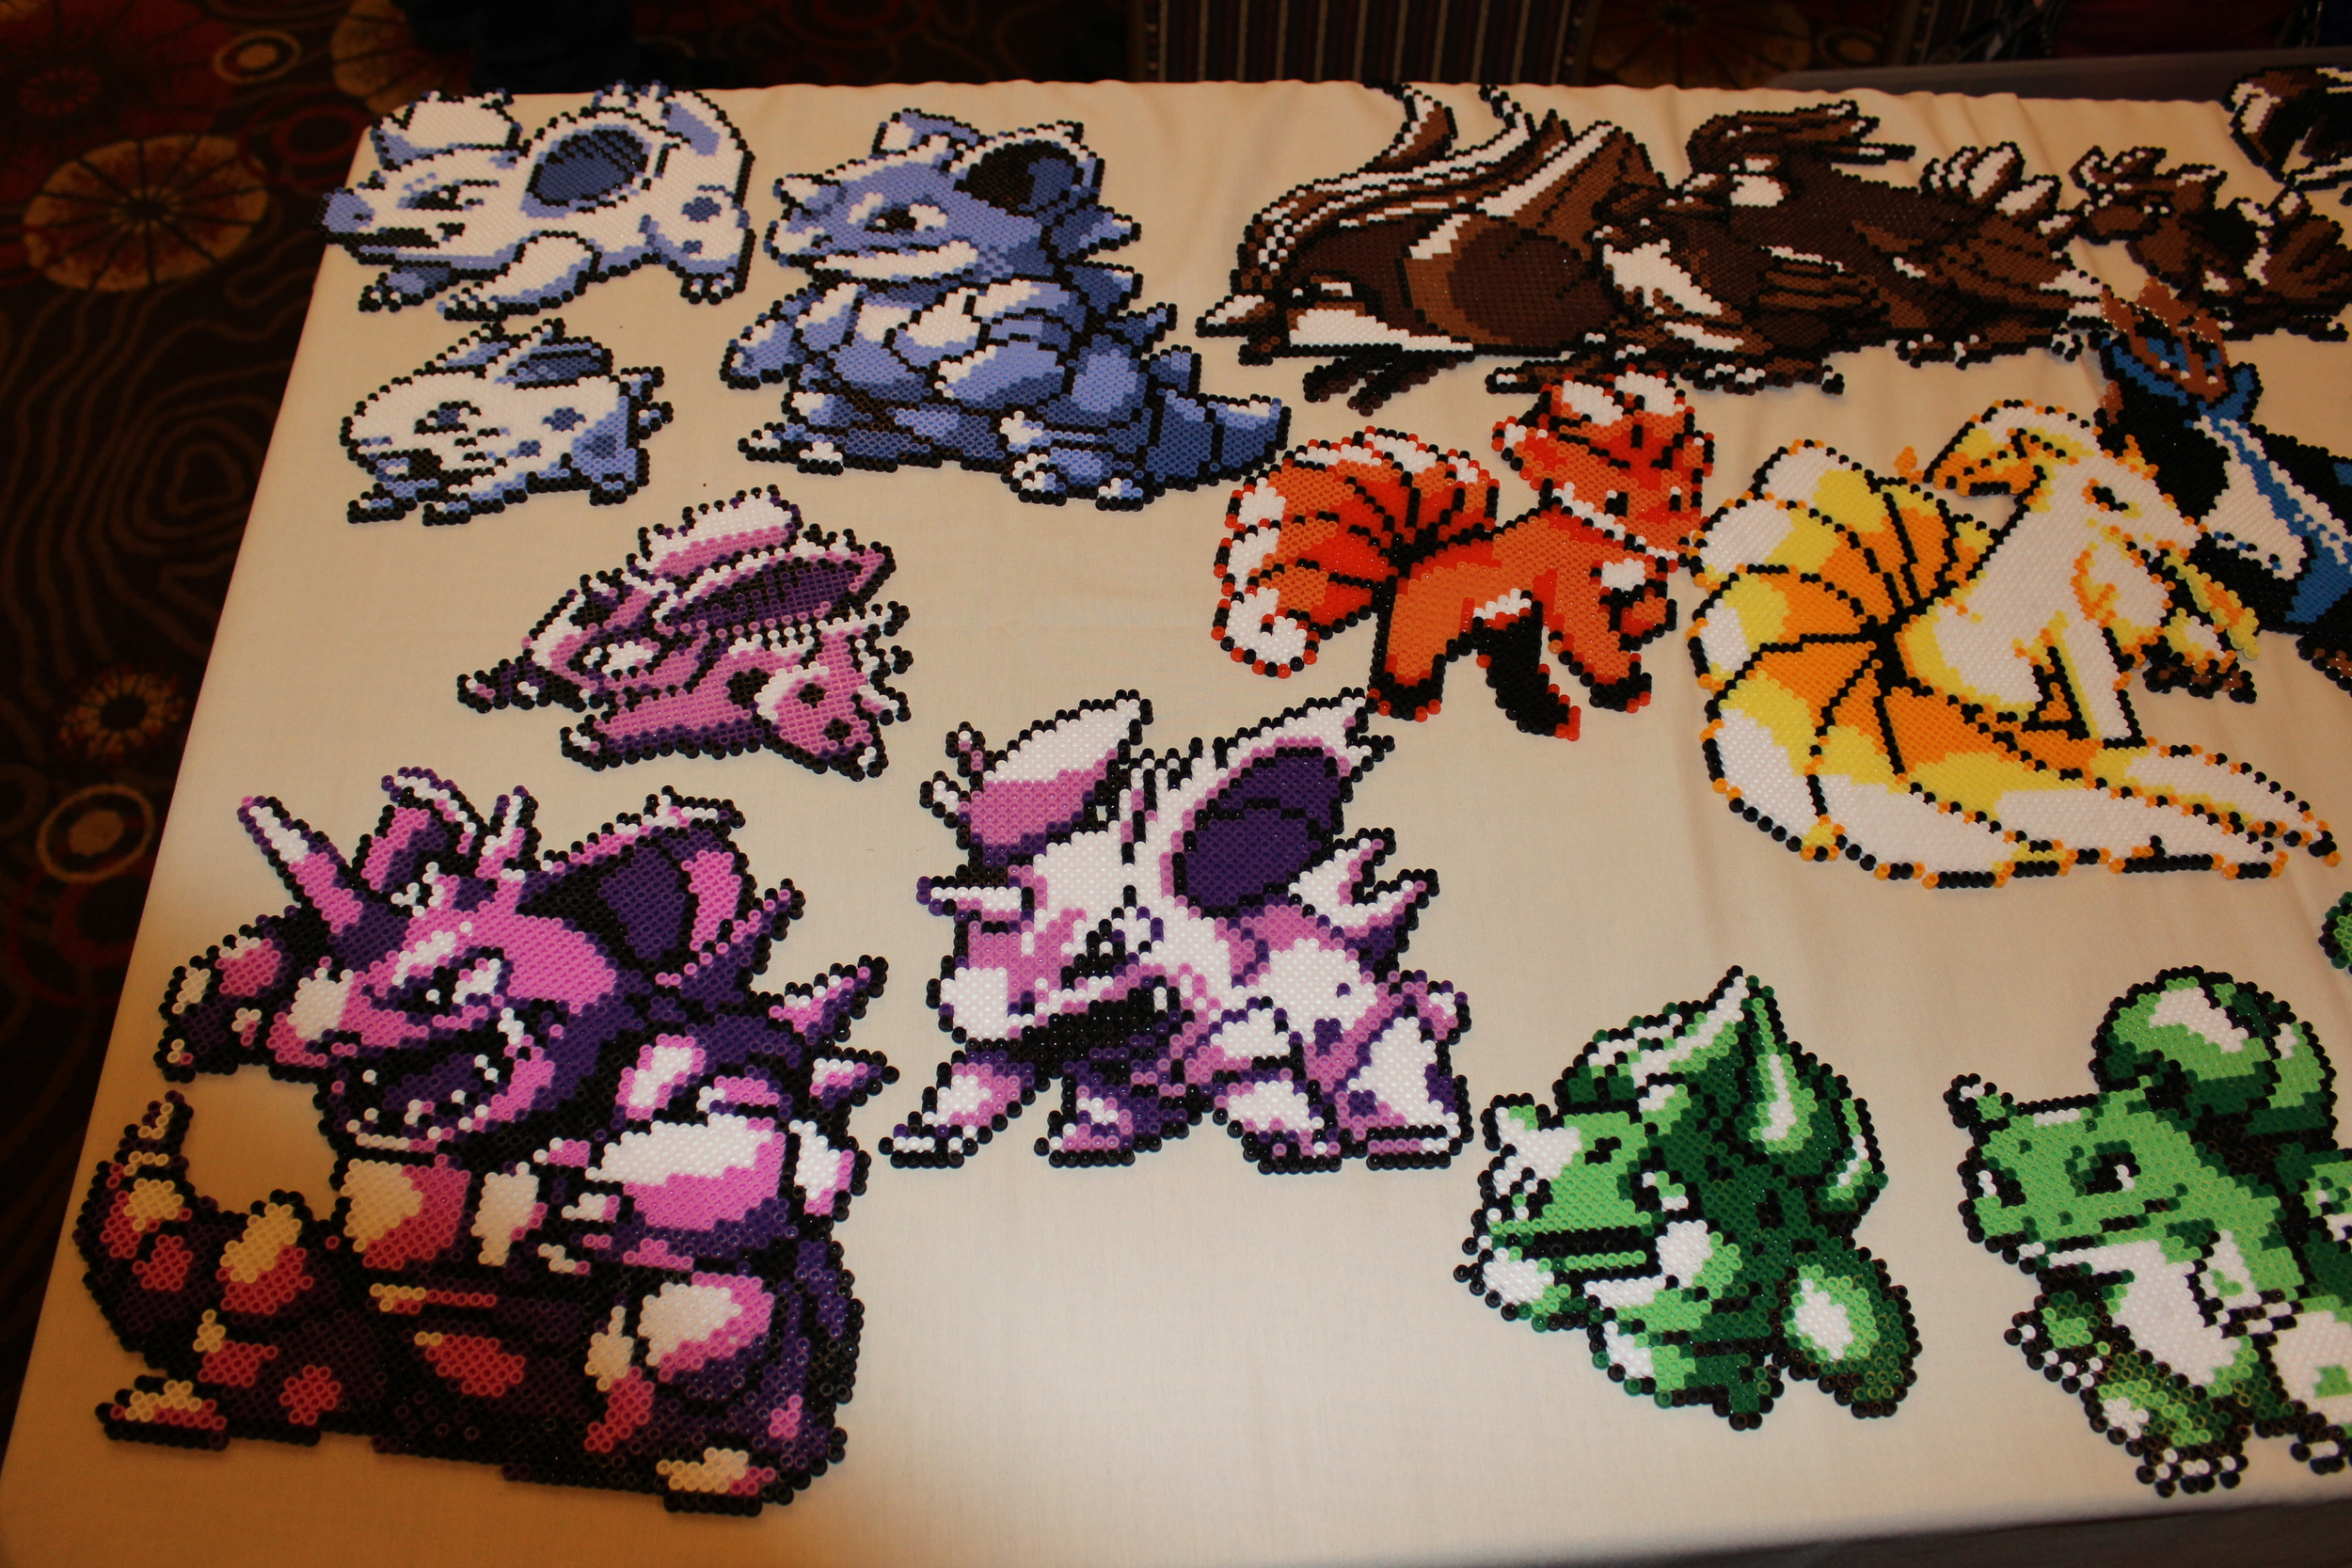 These intricate Pokemon pearler bead art were some of the best at the show.